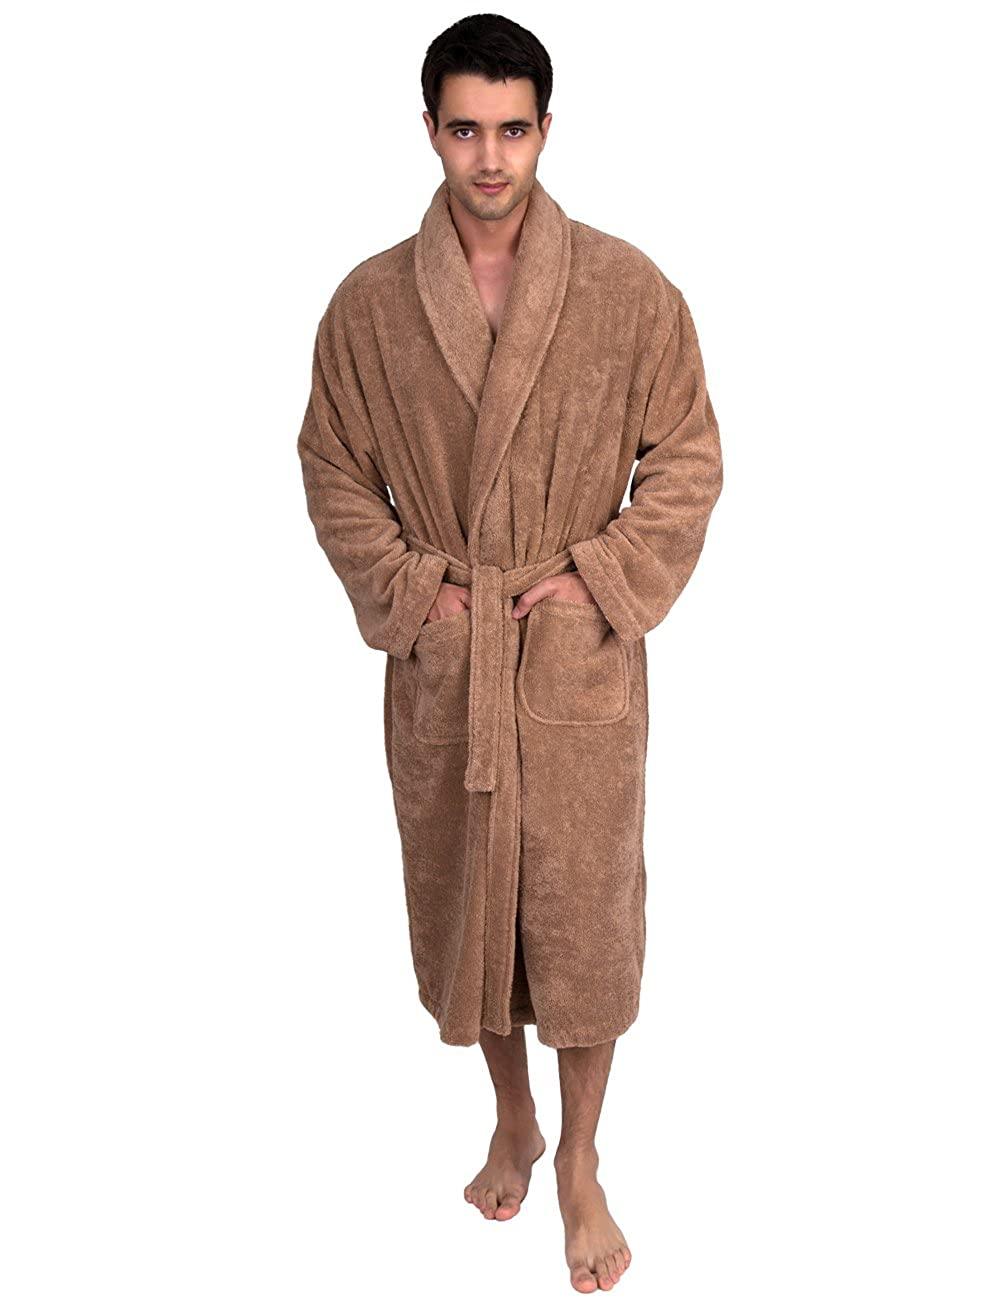 TowelSelections Men's Organic Cotton Bathrobe Terry Shawl Robe Made in Turkey